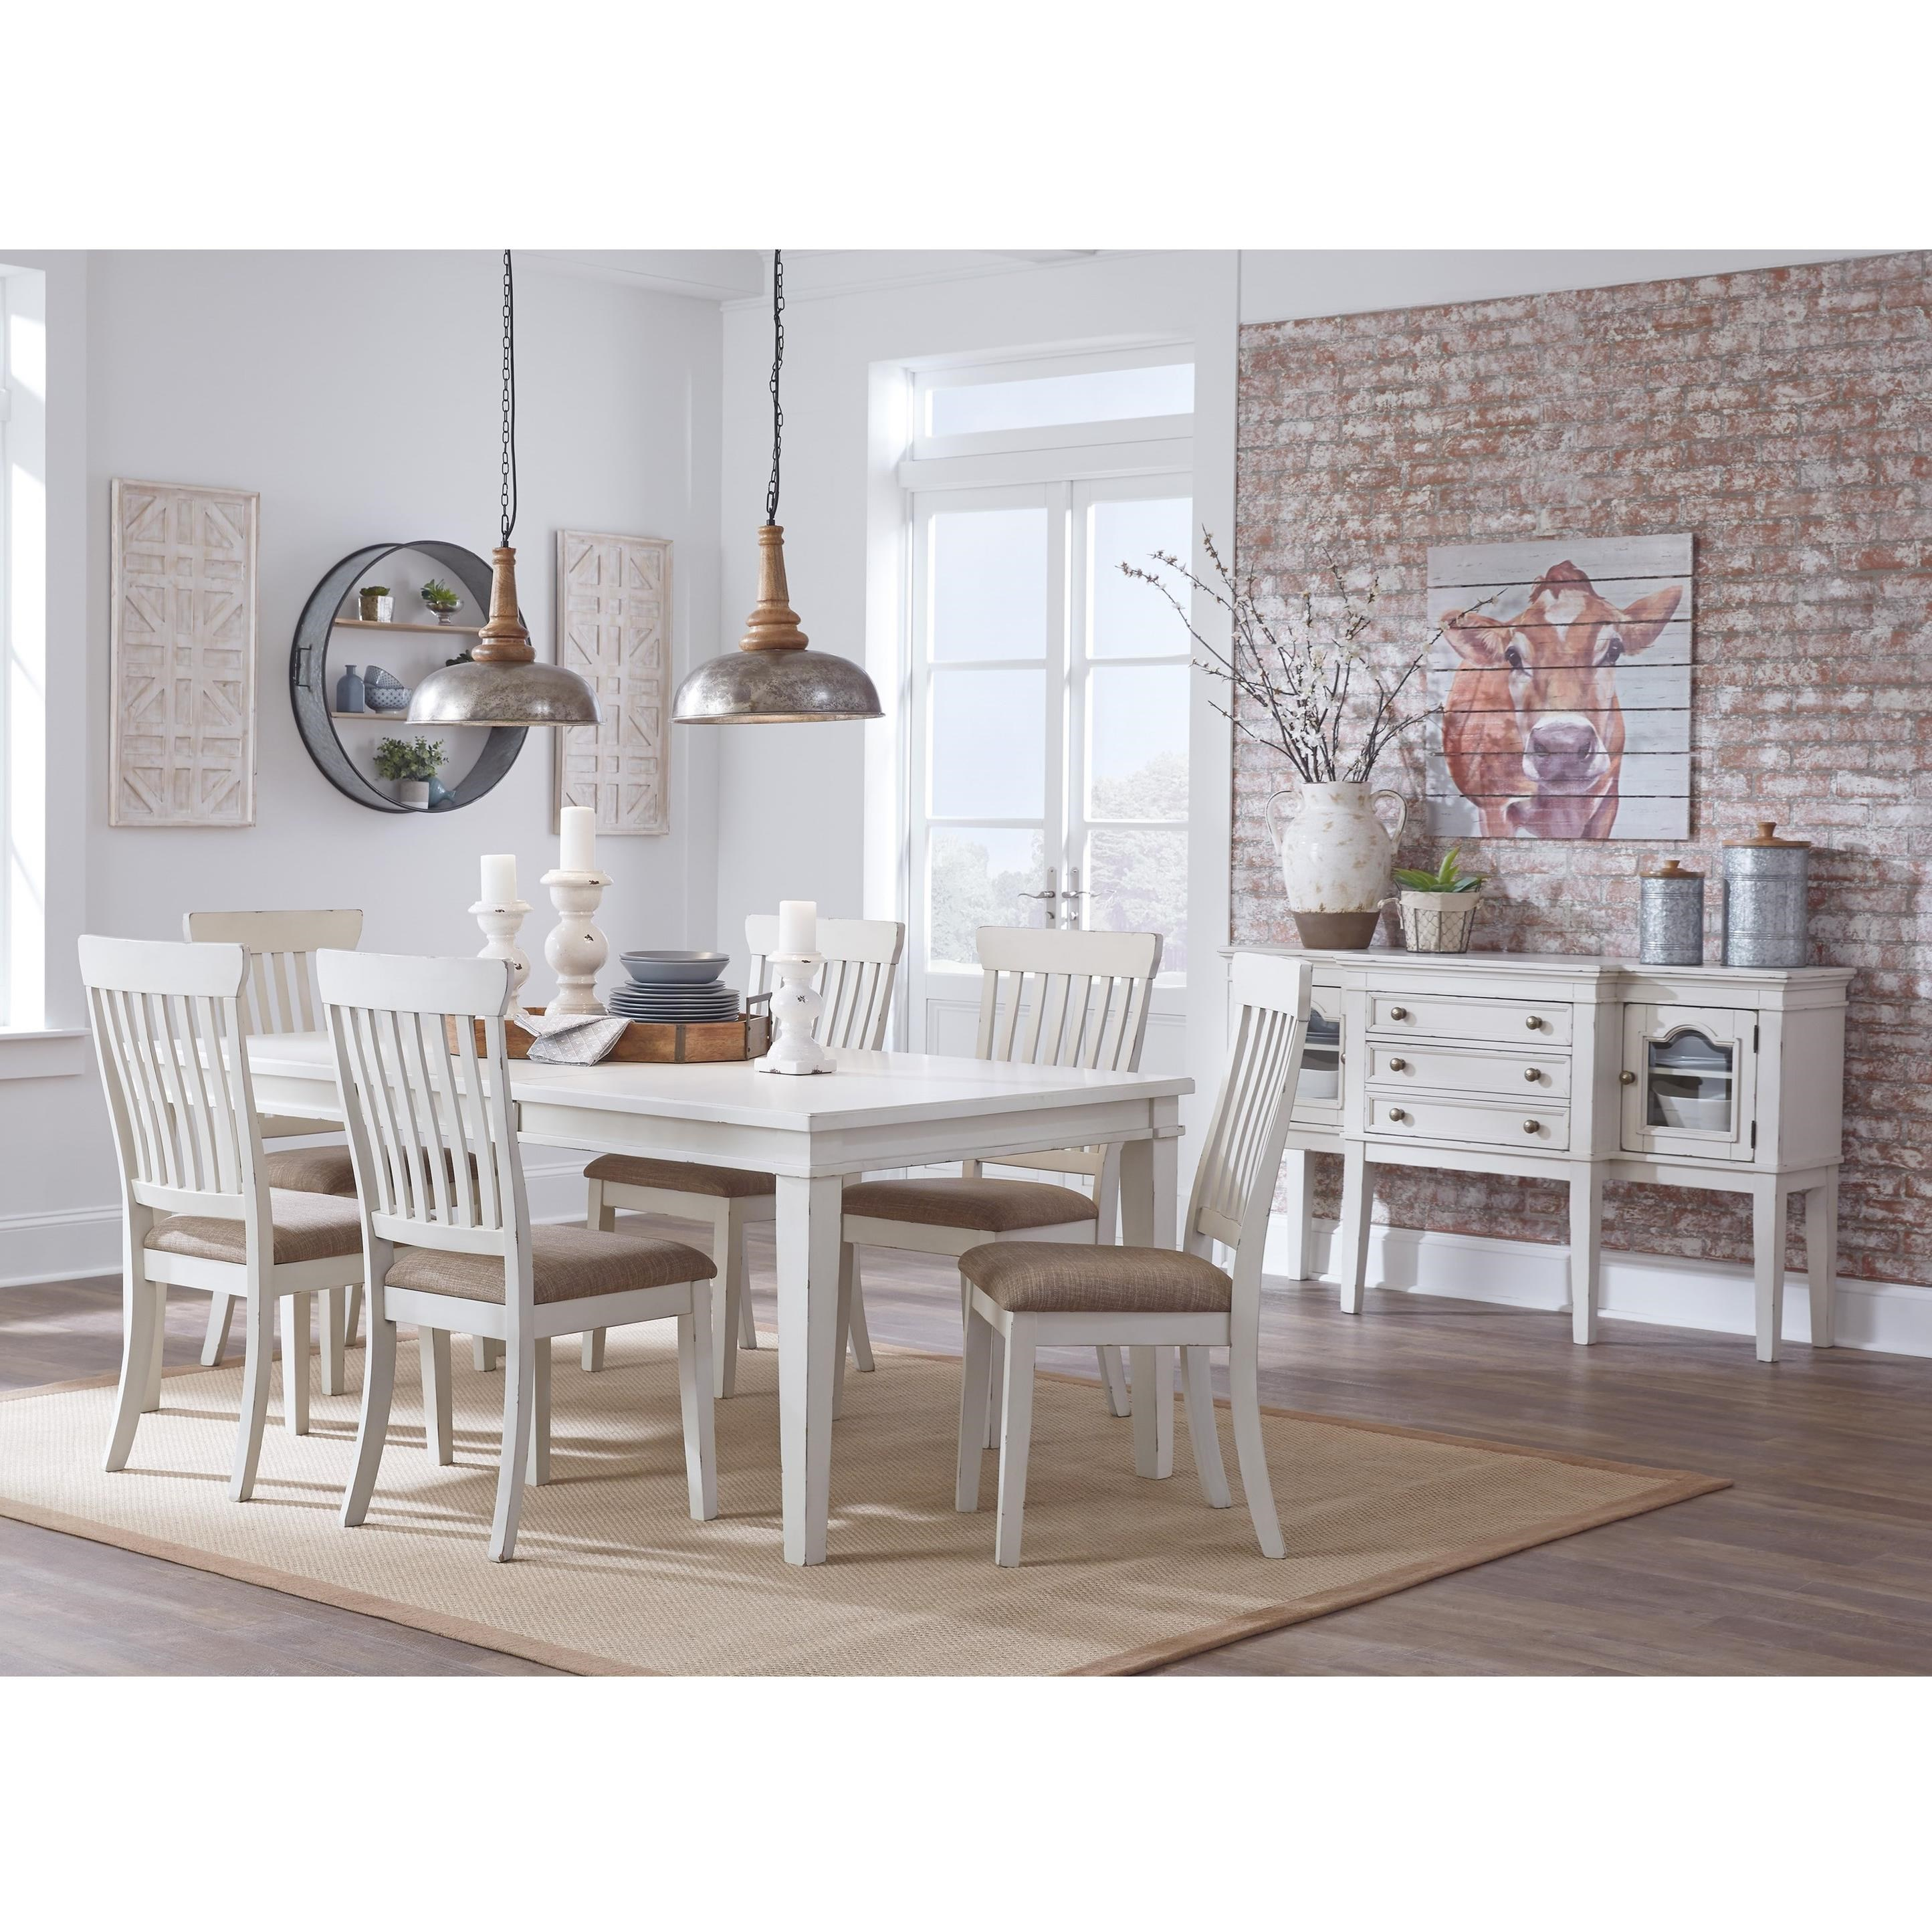 Danbeck Formal Dining Room Group